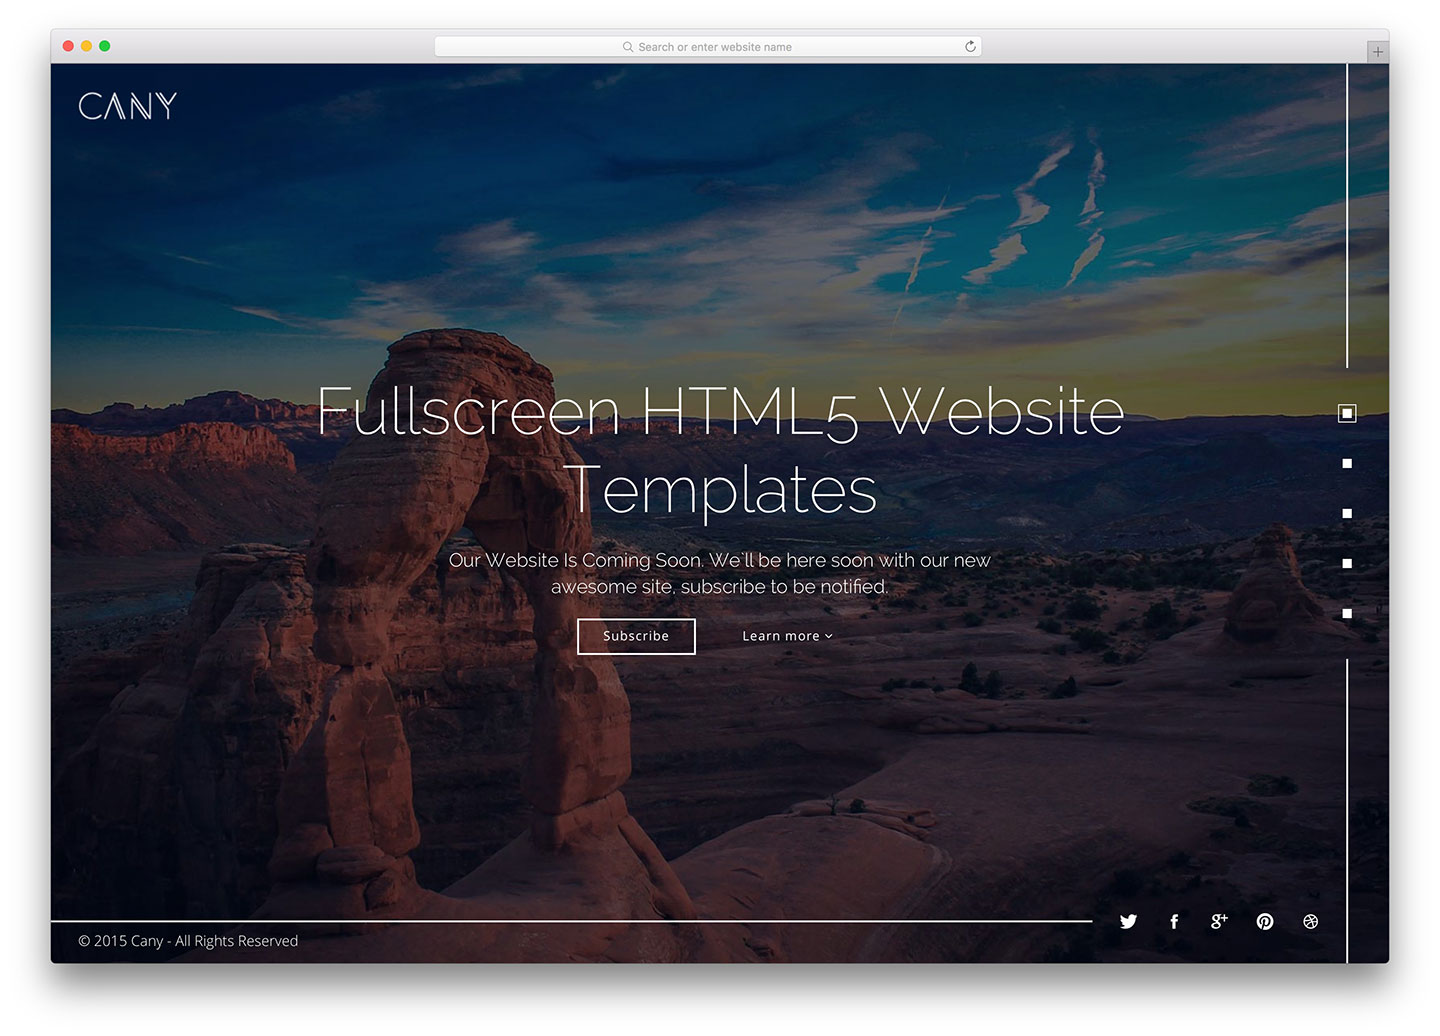 Top 20 Fullscreen HTML5/CSS3 Website Templates 2018 - Colorlib